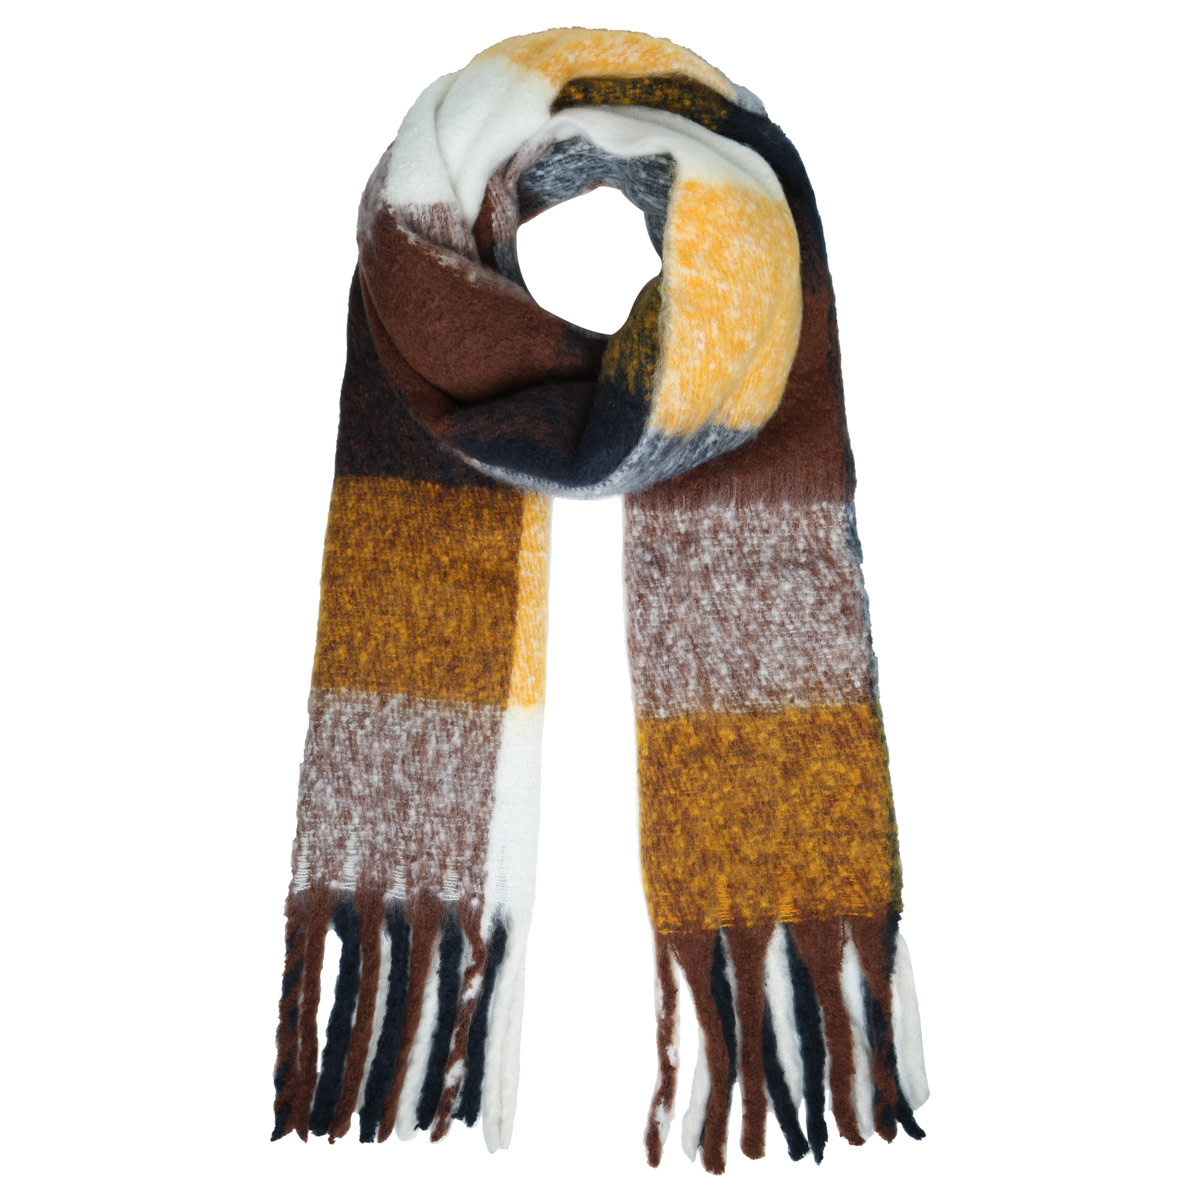 With love Scarf colored blocks brown - yellow